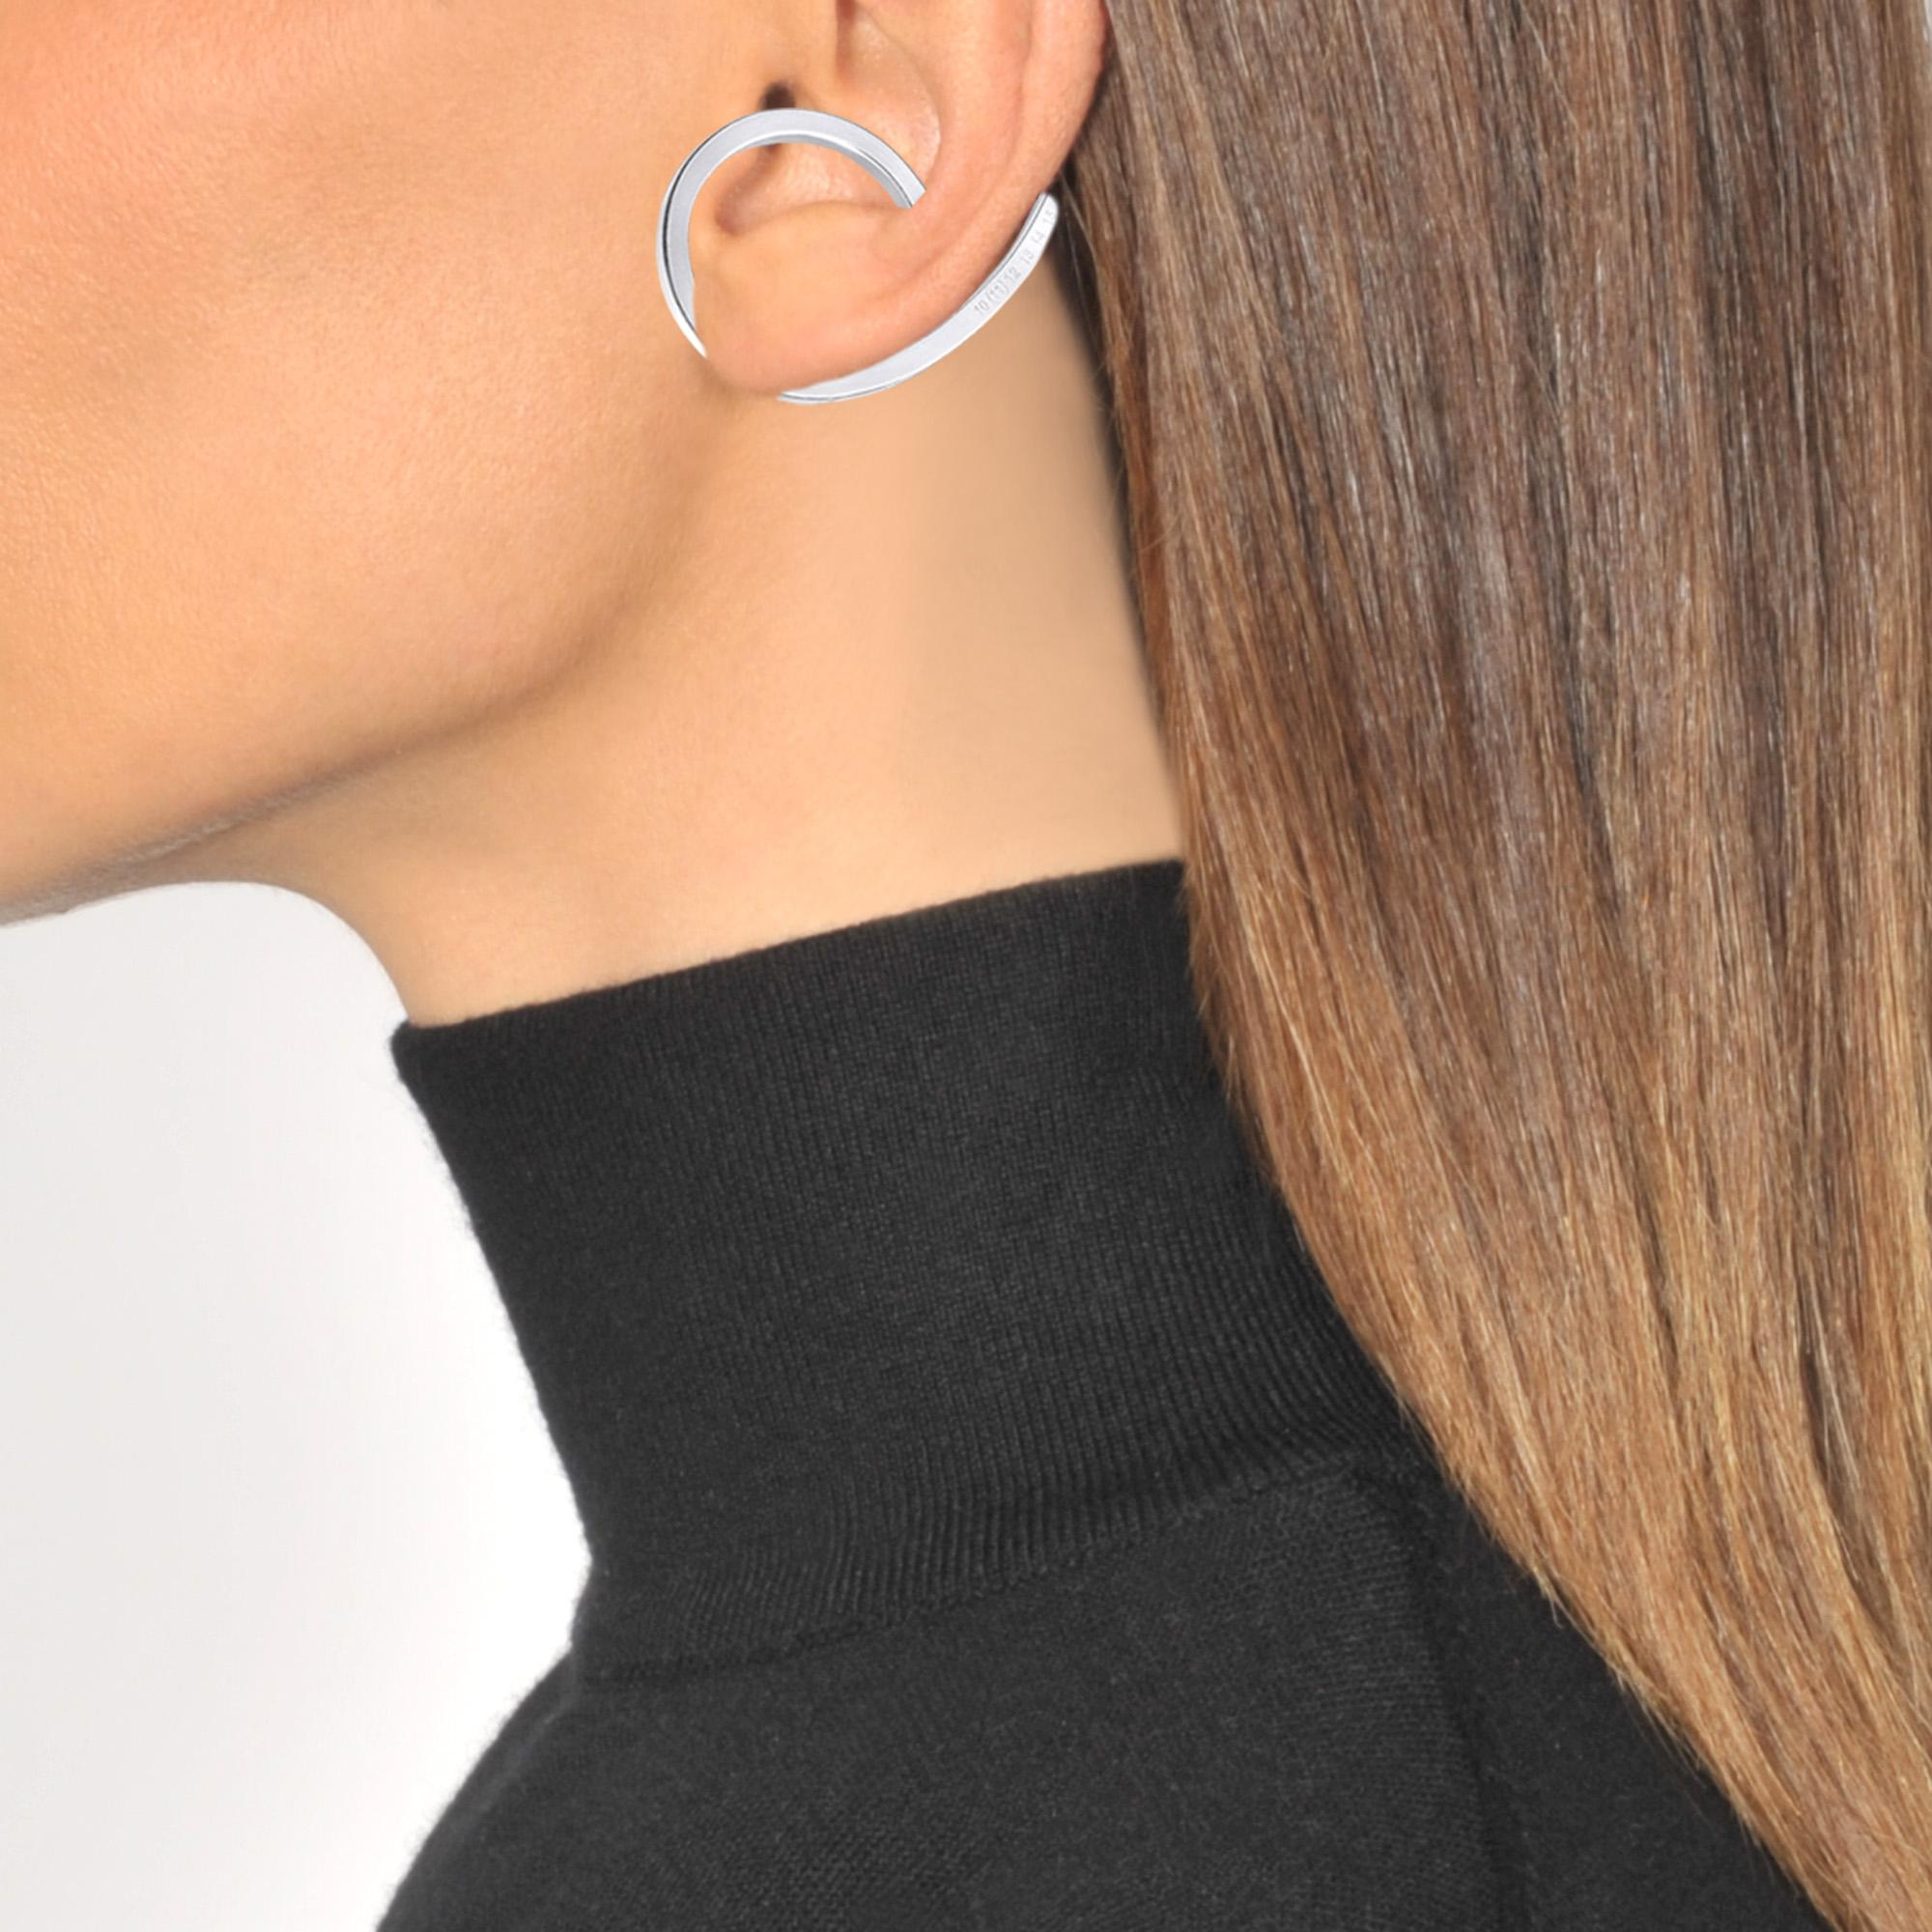 Maison Margiela Silver Ear-cuff in Metallic